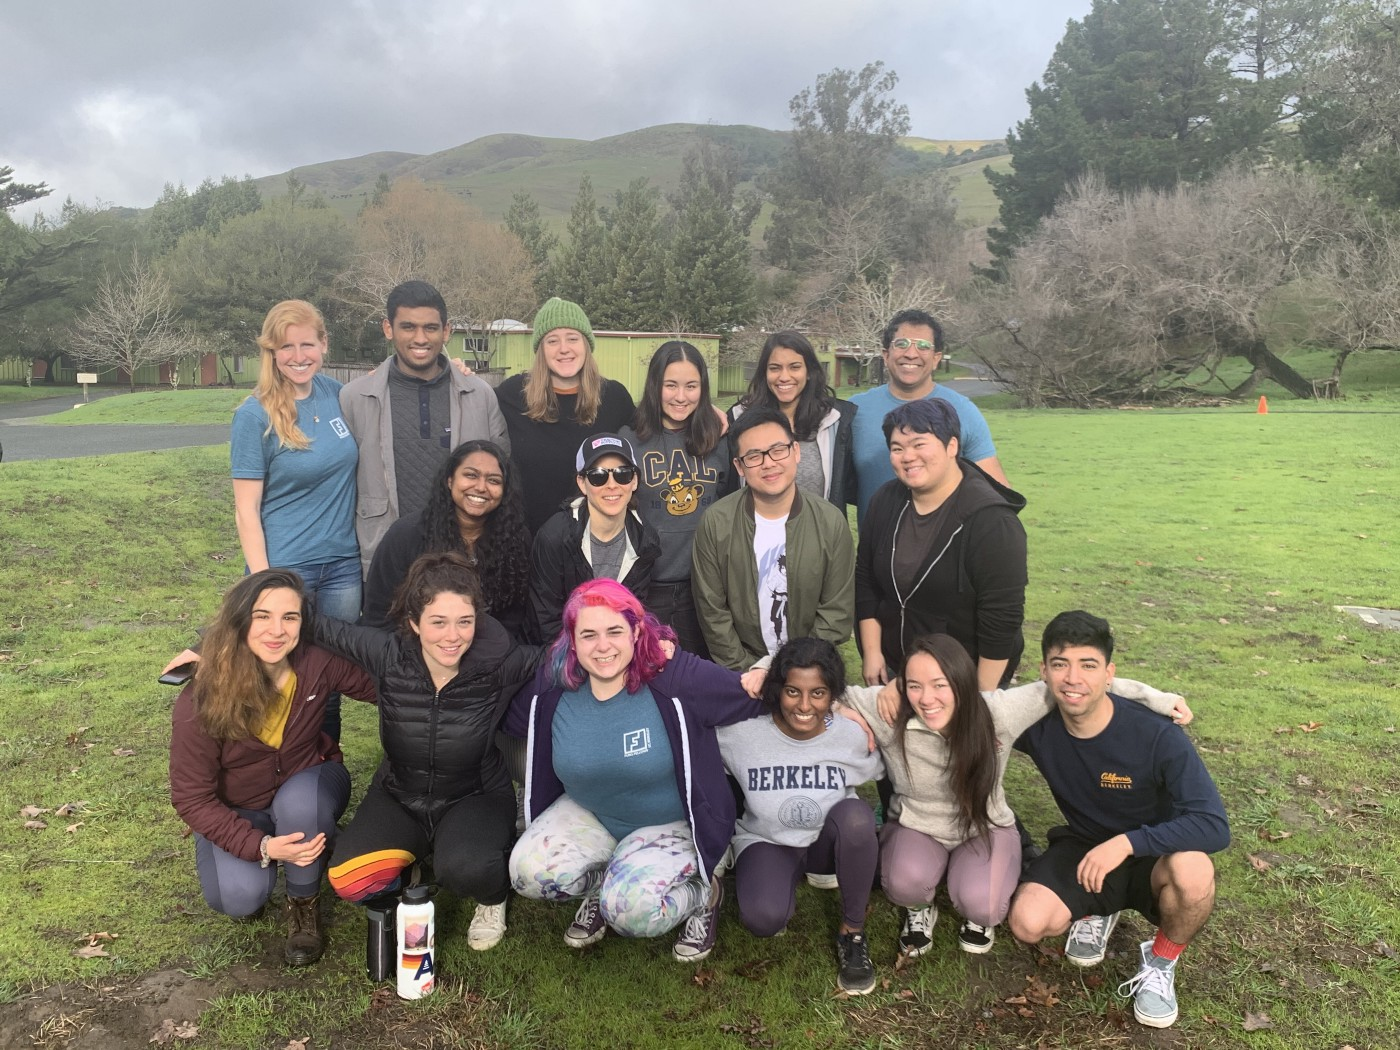 The Honors Fellows, Adrienne, Caroline, and Jaspal pose together during their retreat.